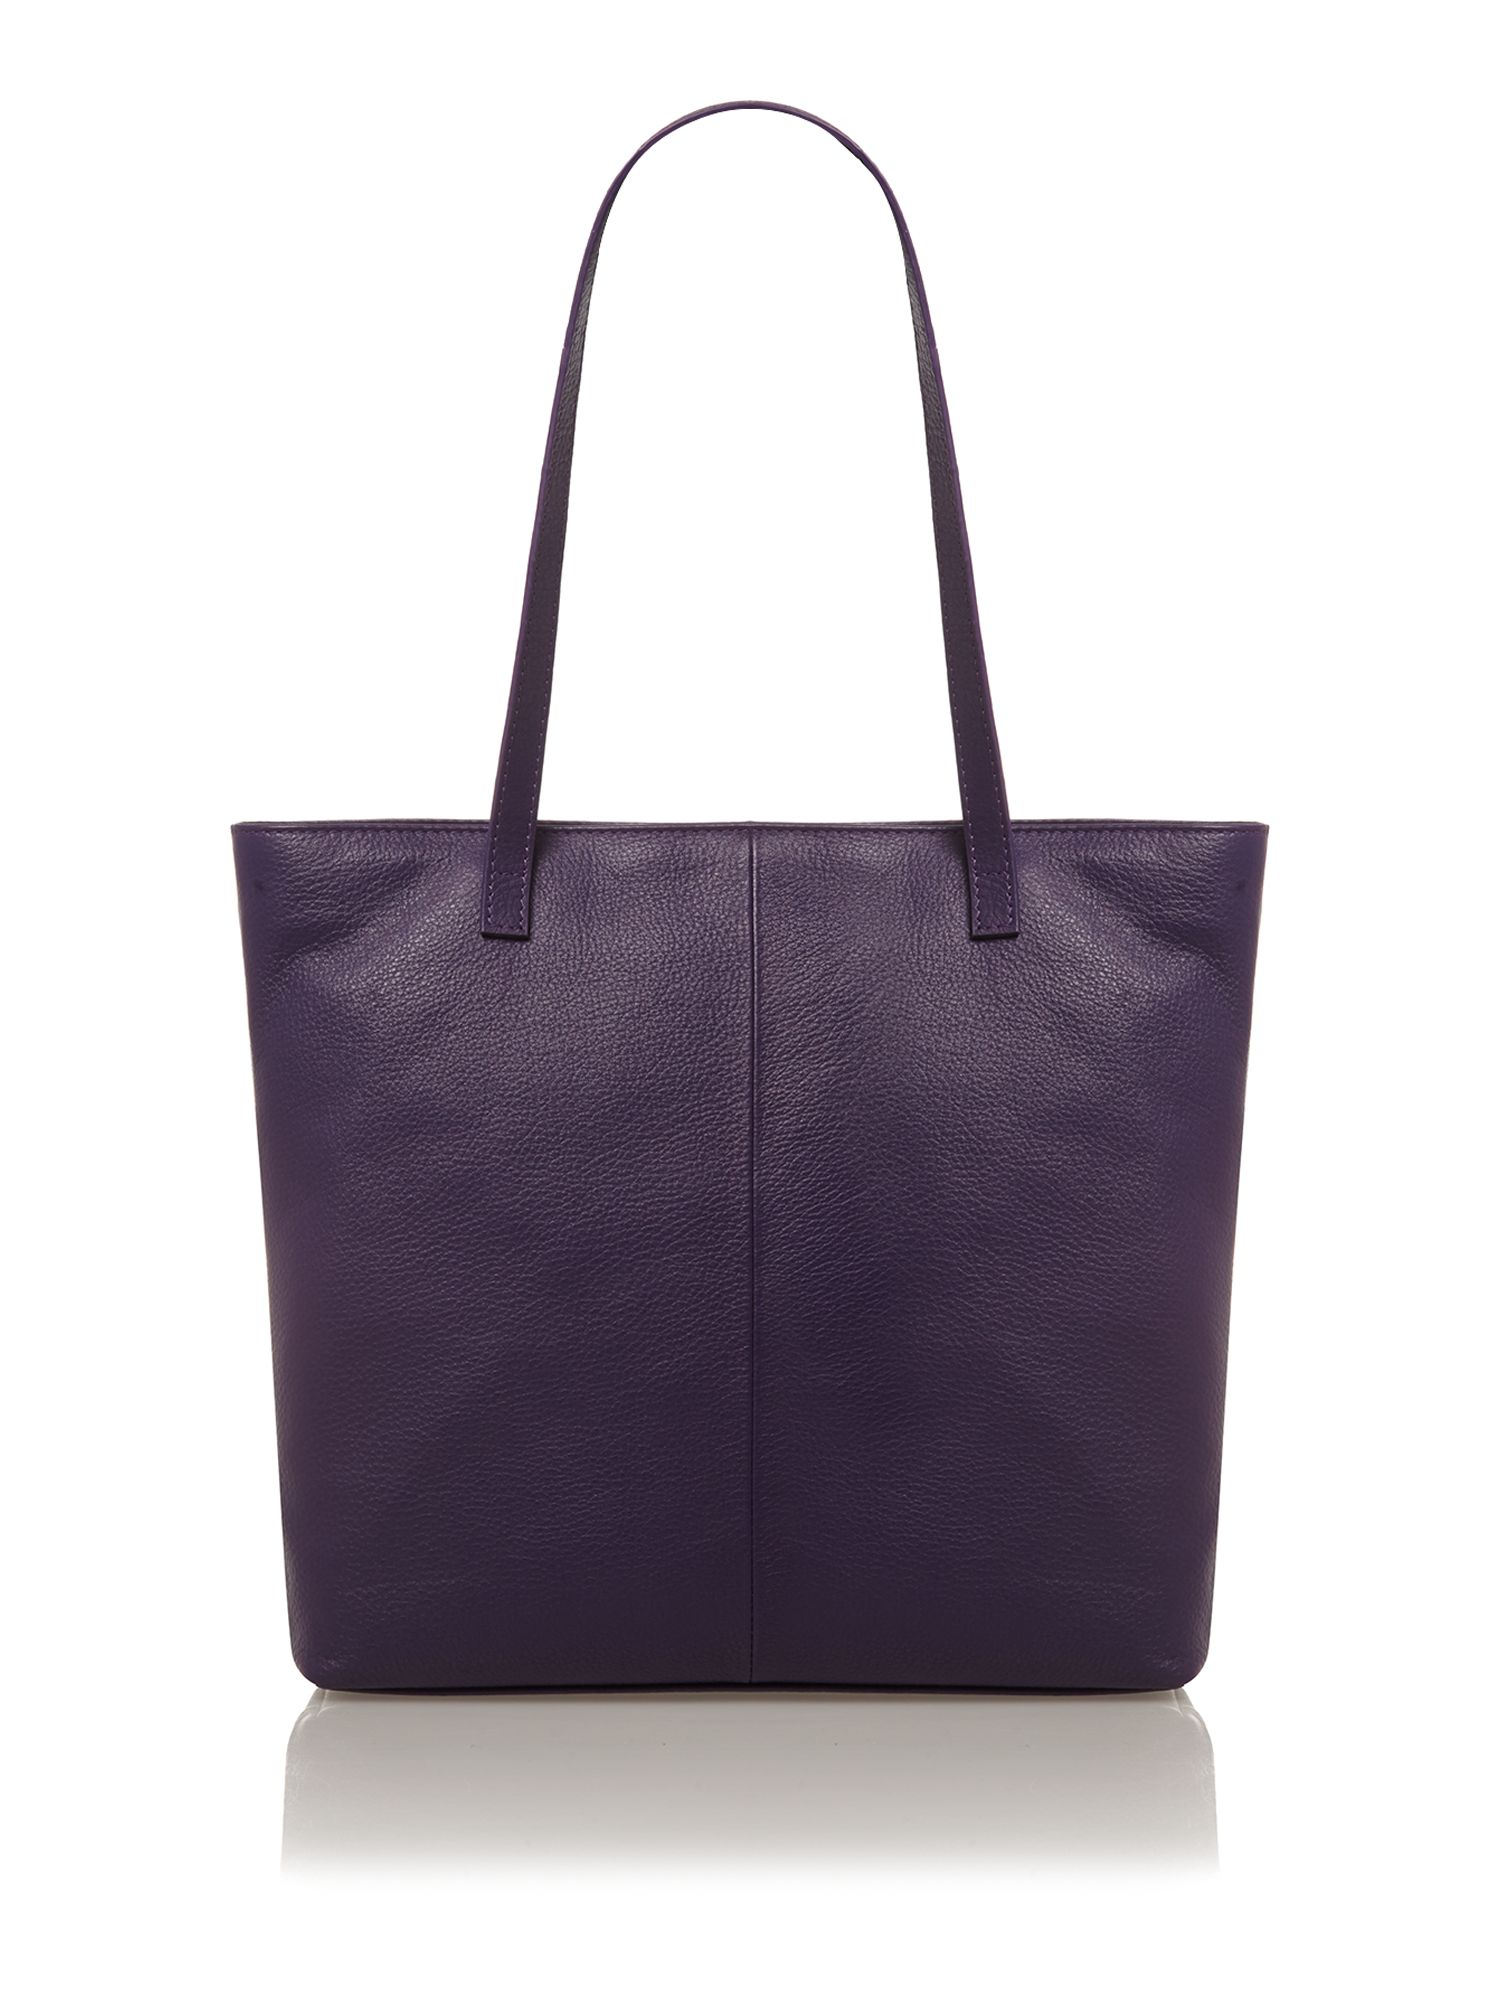 Bella tote central emboss